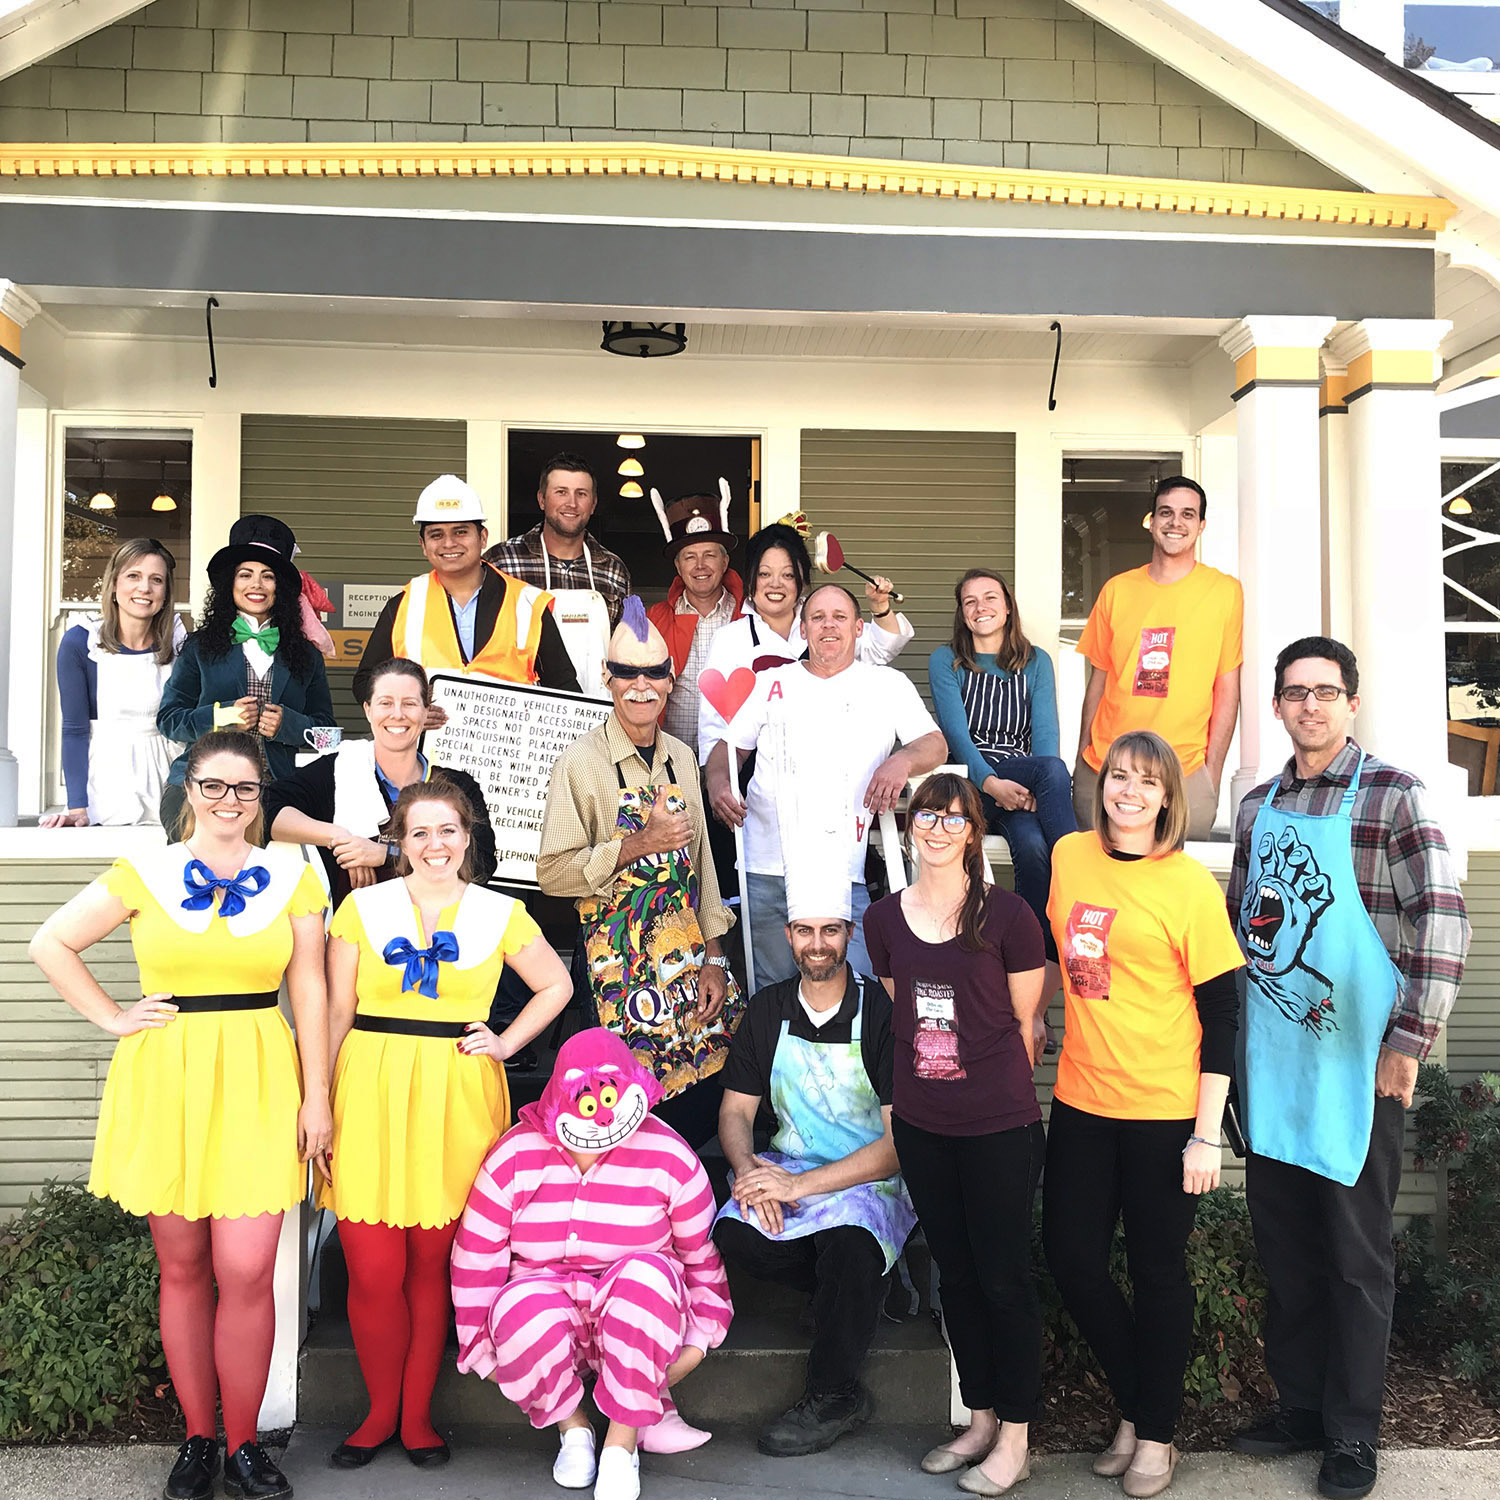 Here's all those who dressed up. So much fun!